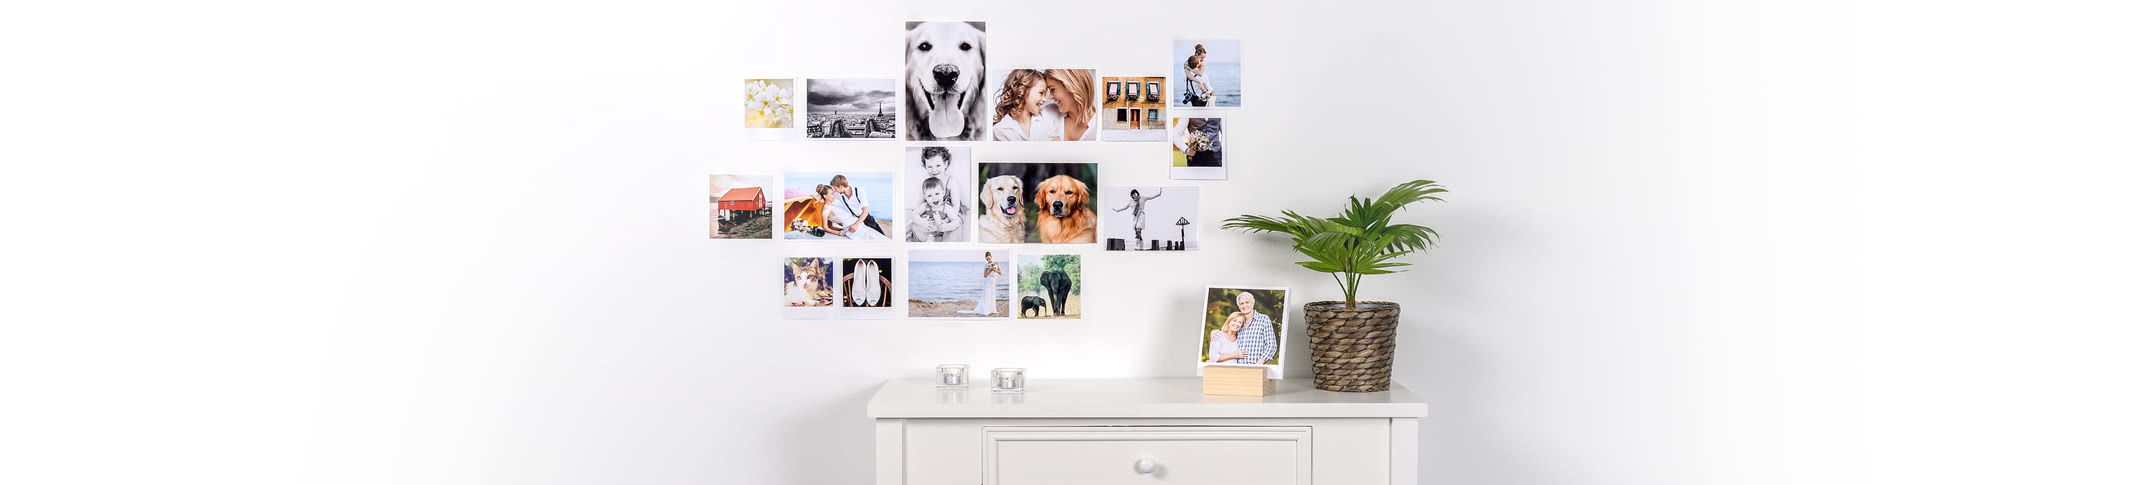 Prints - Digital Prints of your best photos